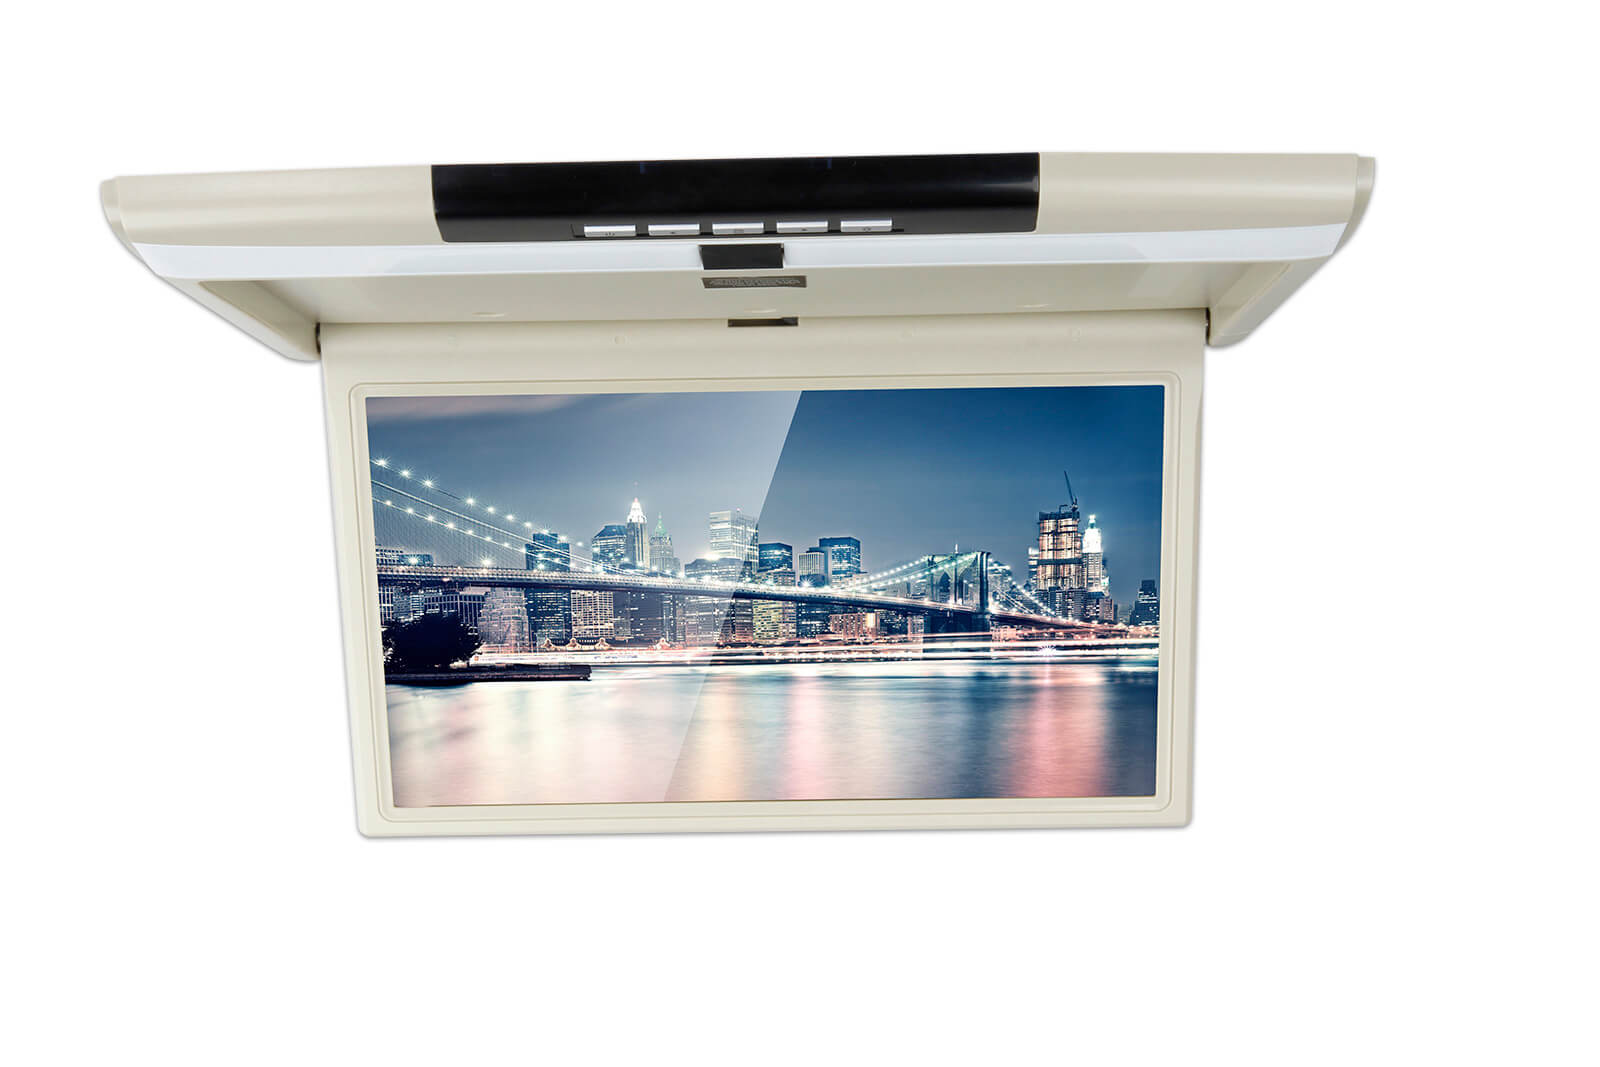 15.6 Inch Flip Down LED Monitor with HDMI Input